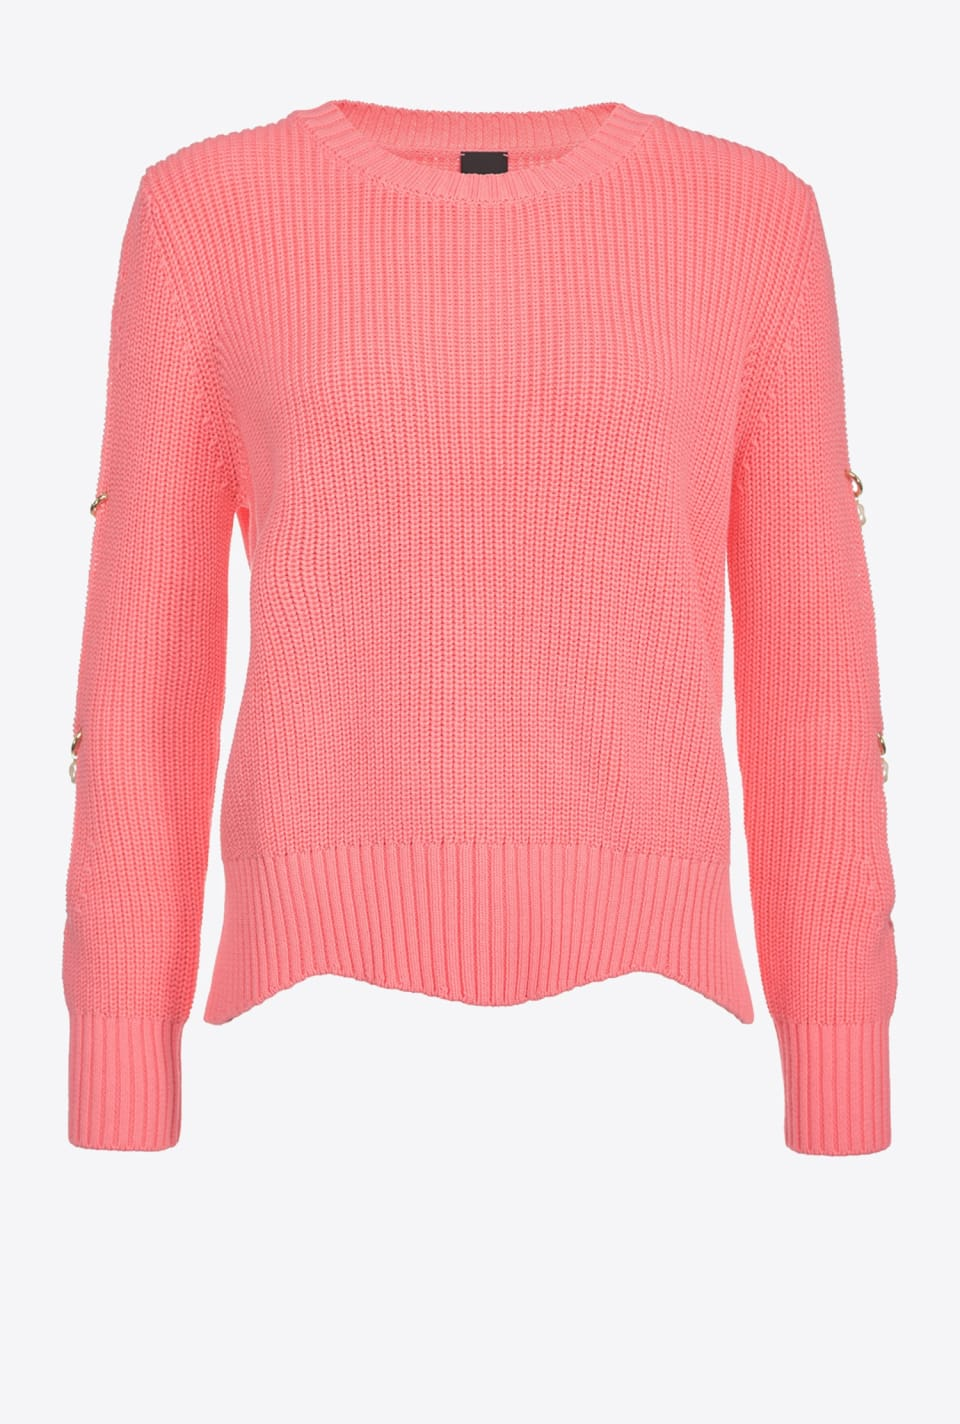 Rib knit top with pearls on the sides - Pinko